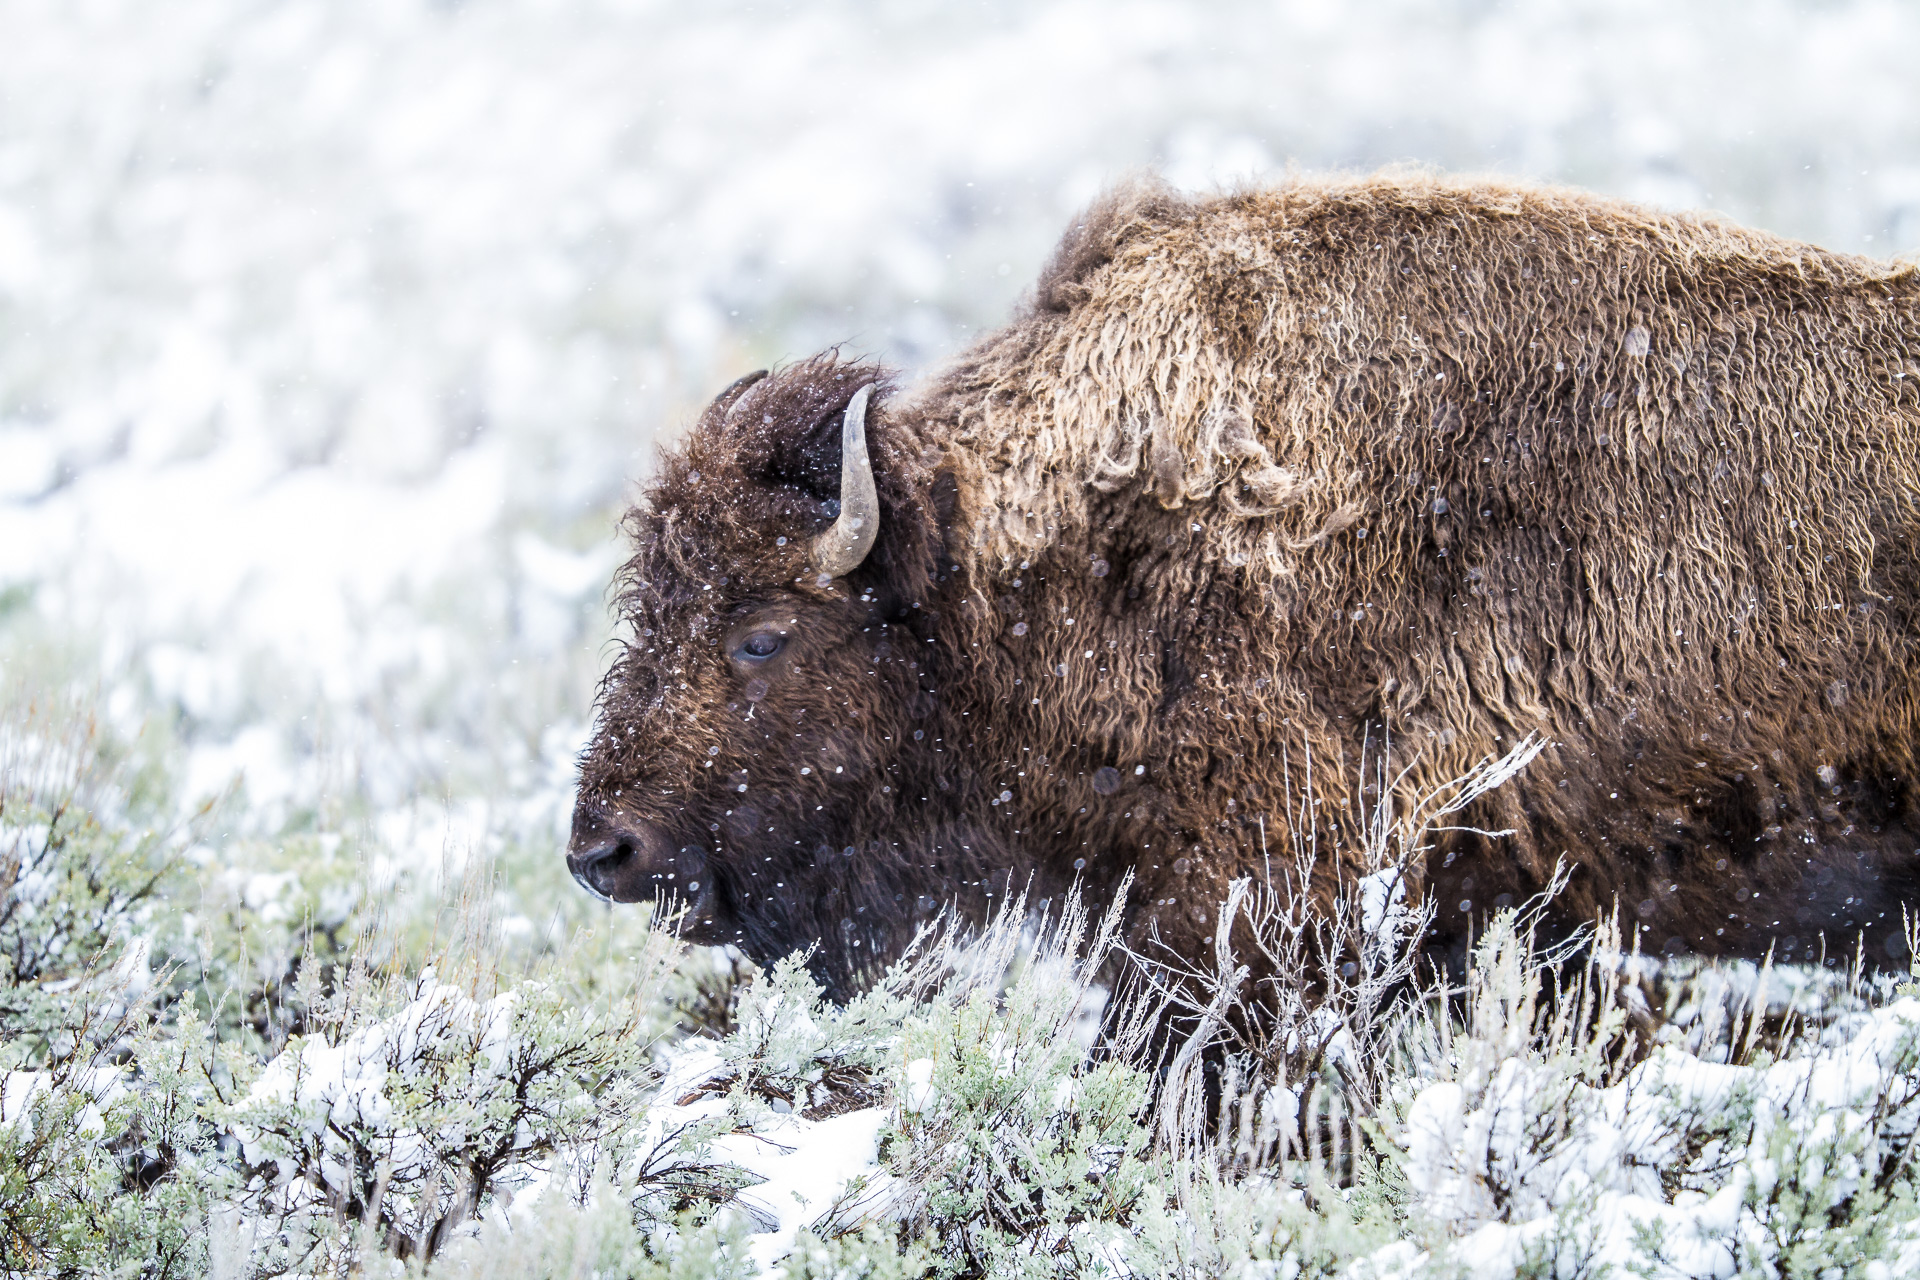 Bison snowy sagebrush Canon 200mm f2 lens Yellowstone National Park WY Sparky Stensaas-0045